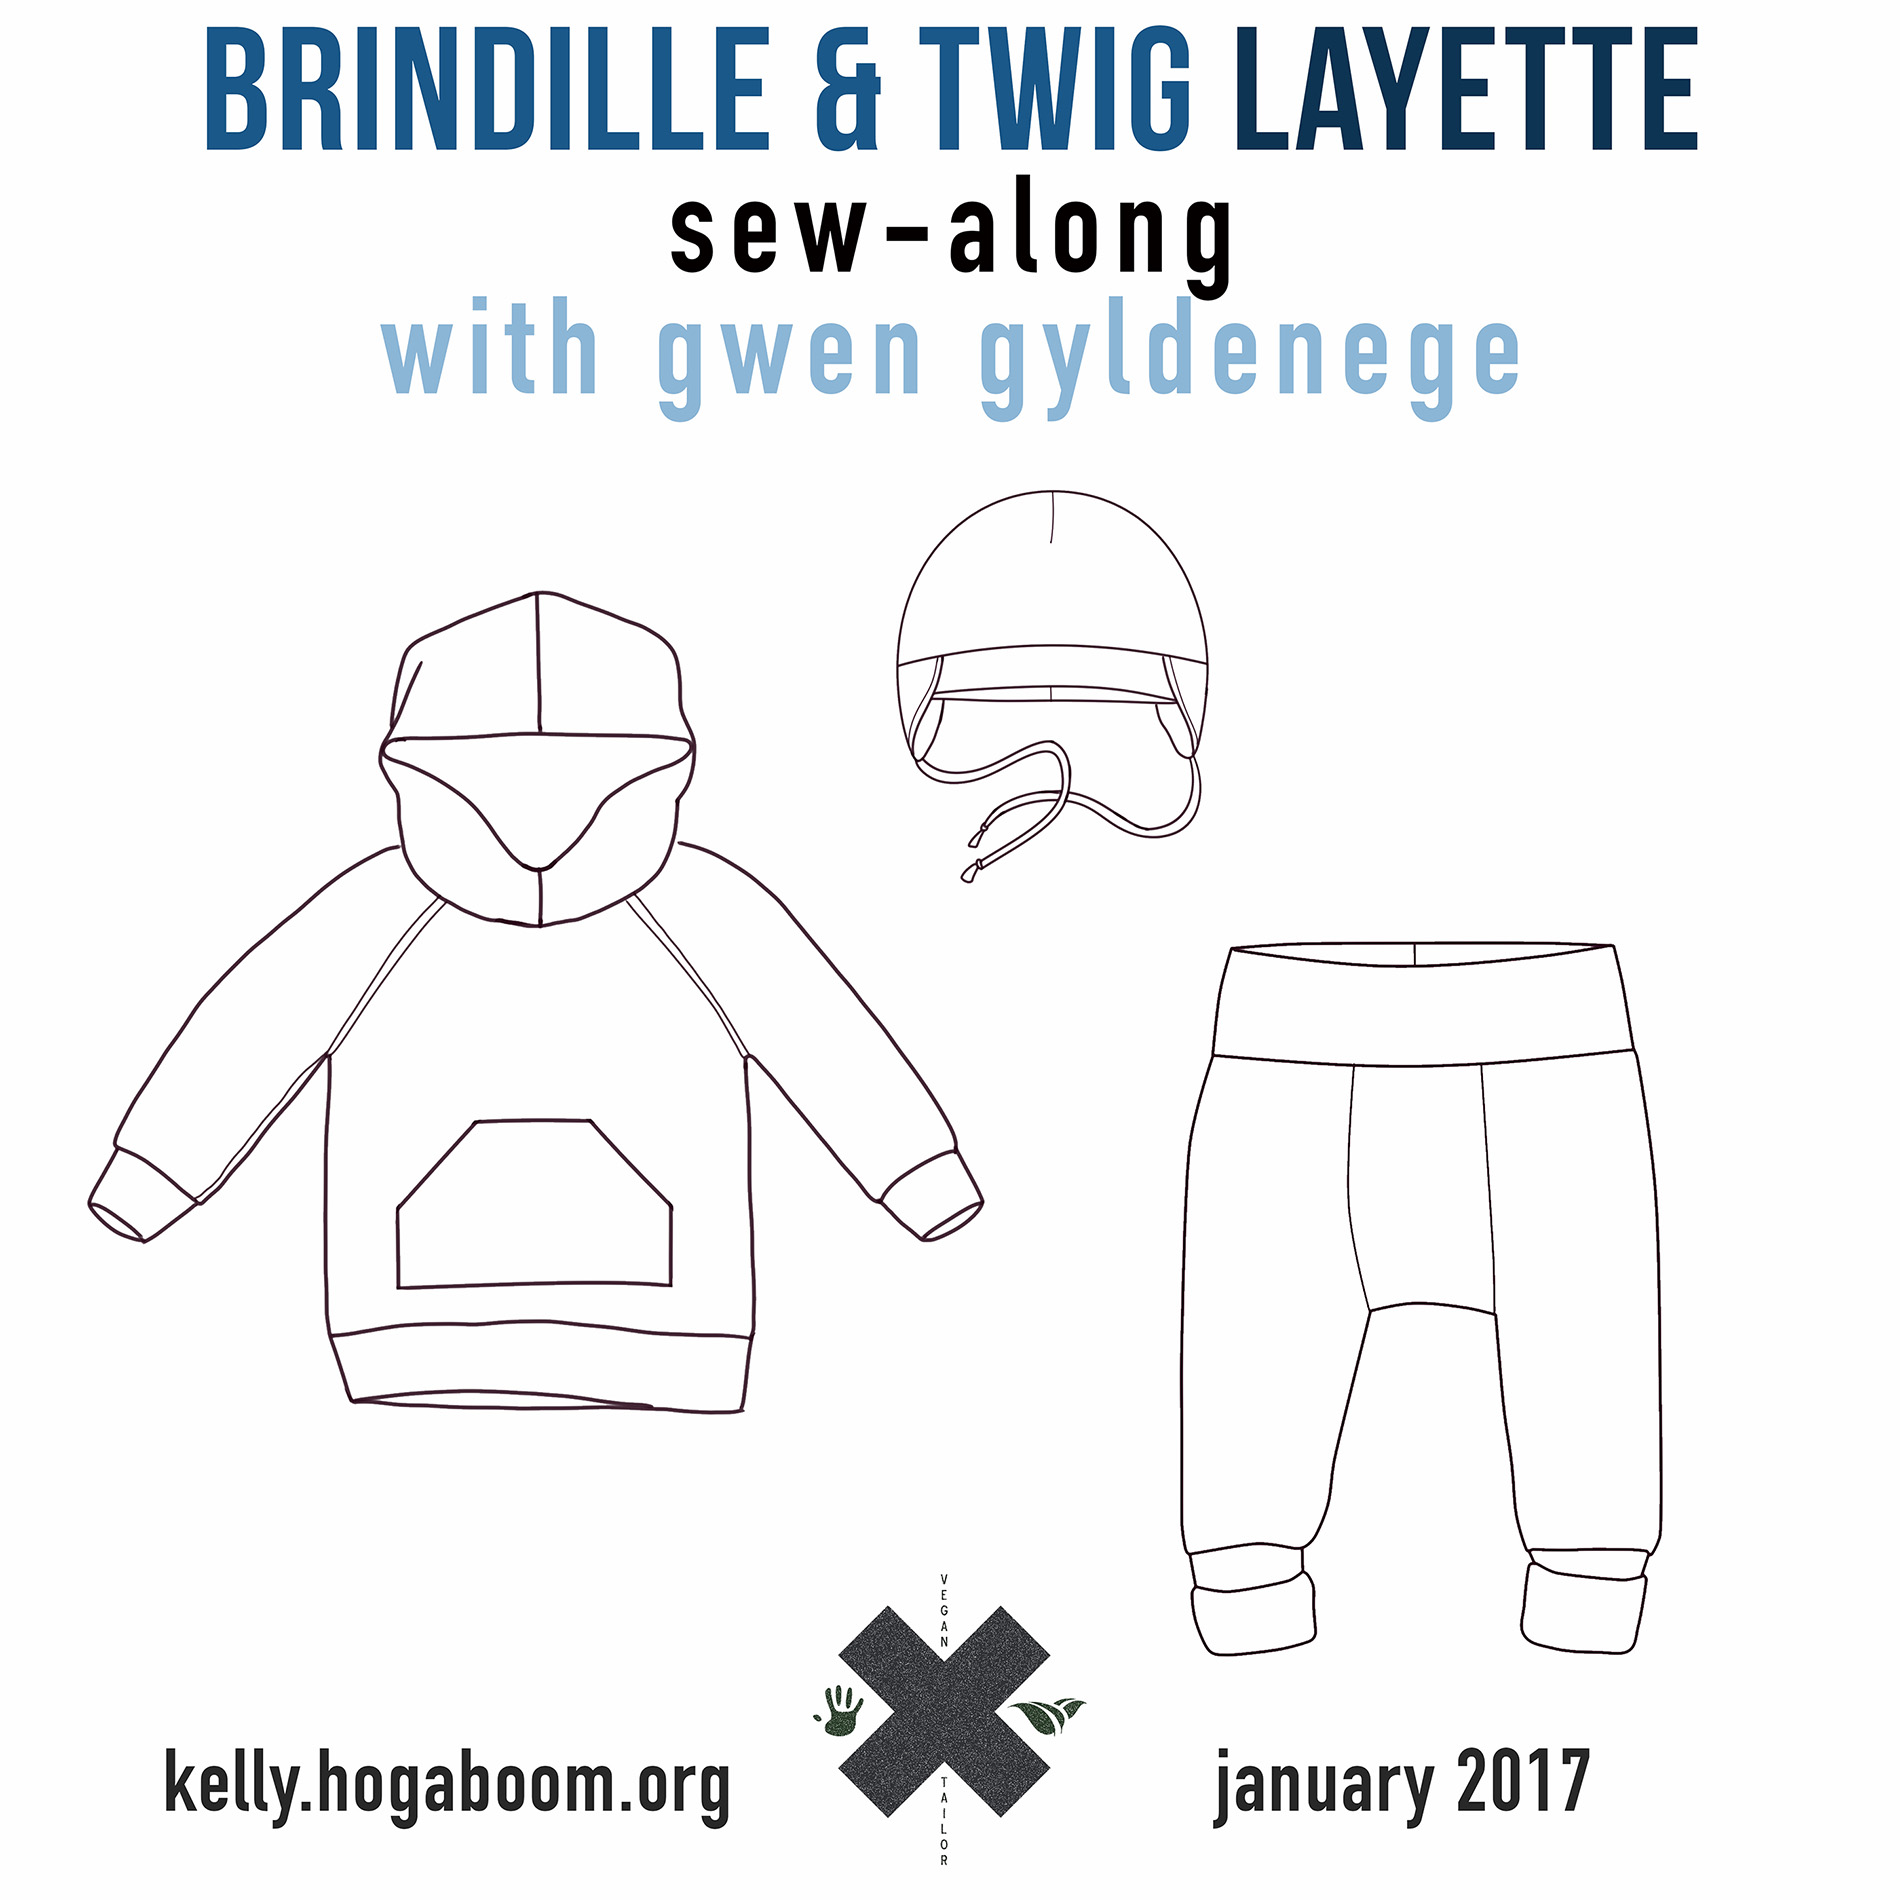 Brindle & Twig Layette Sew-Along